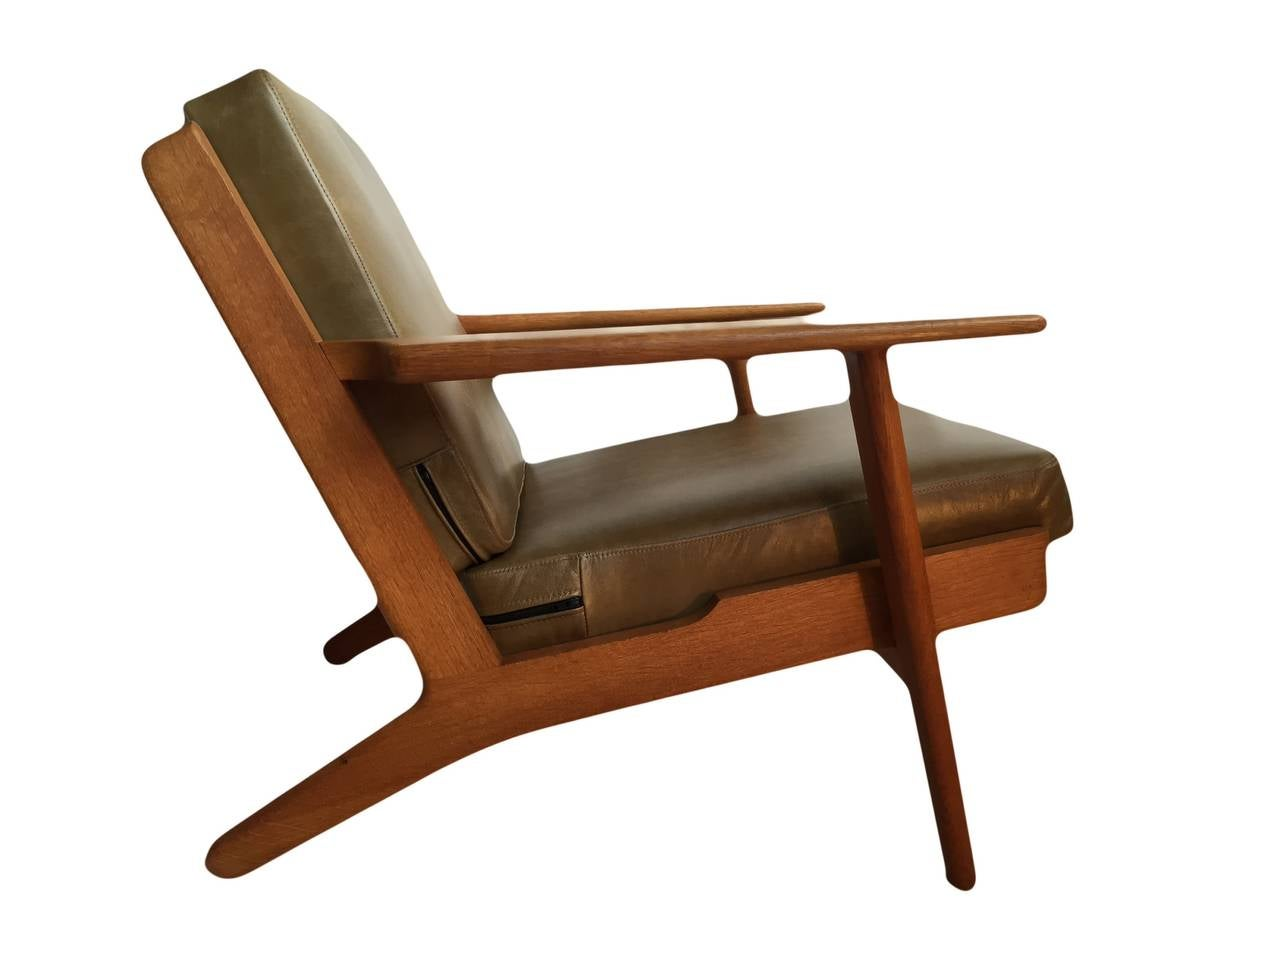 hans j wegner original getama ge290 plank chair at 1stdibs. Black Bedroom Furniture Sets. Home Design Ideas